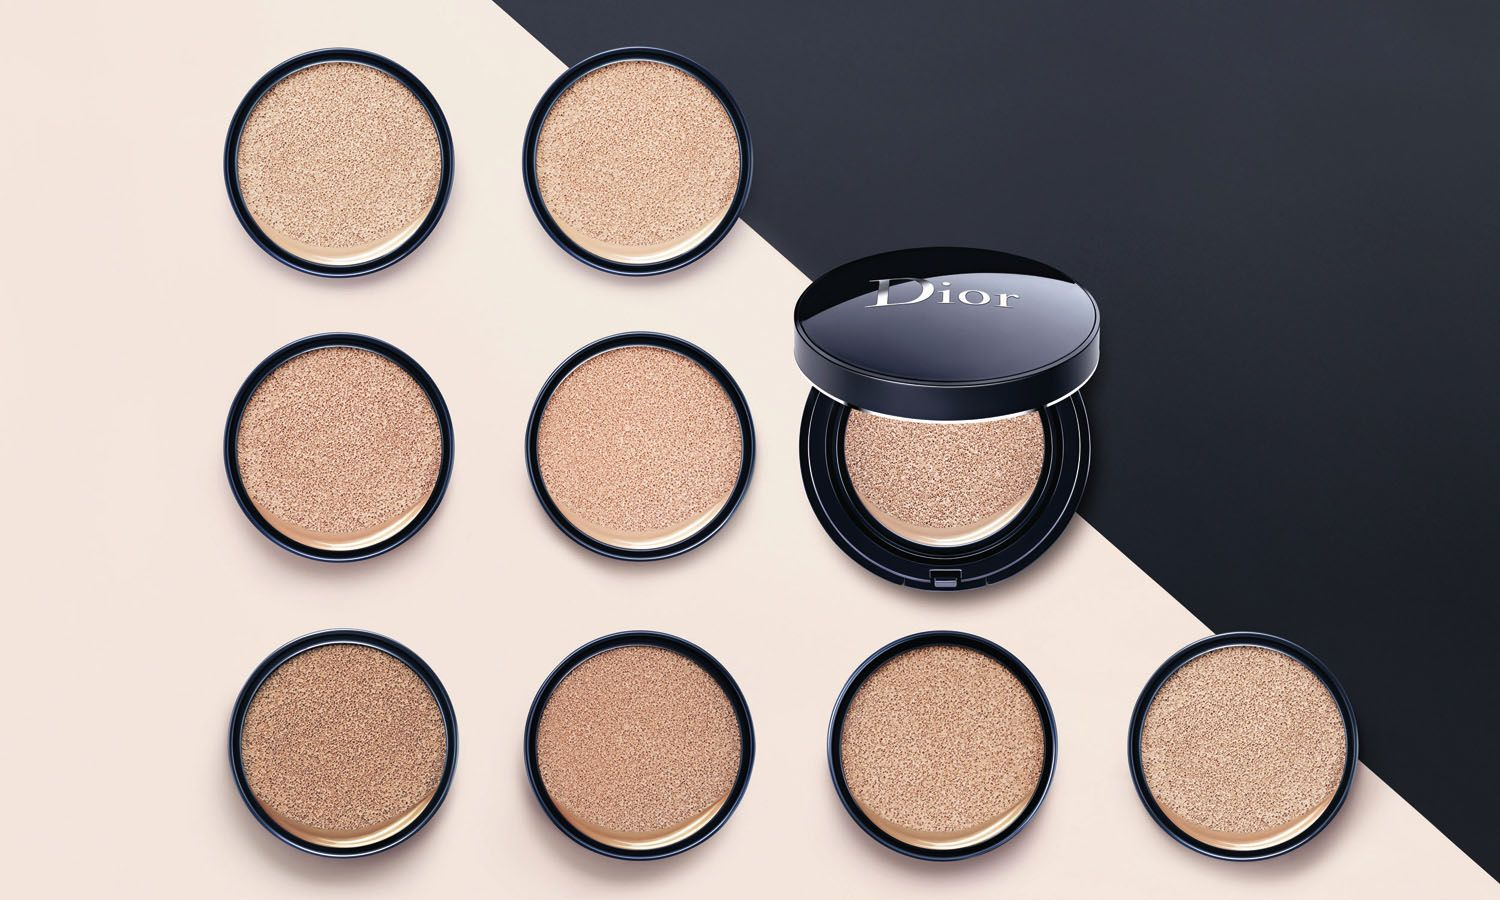 10 Beauty Fads That Won't Be Going Away